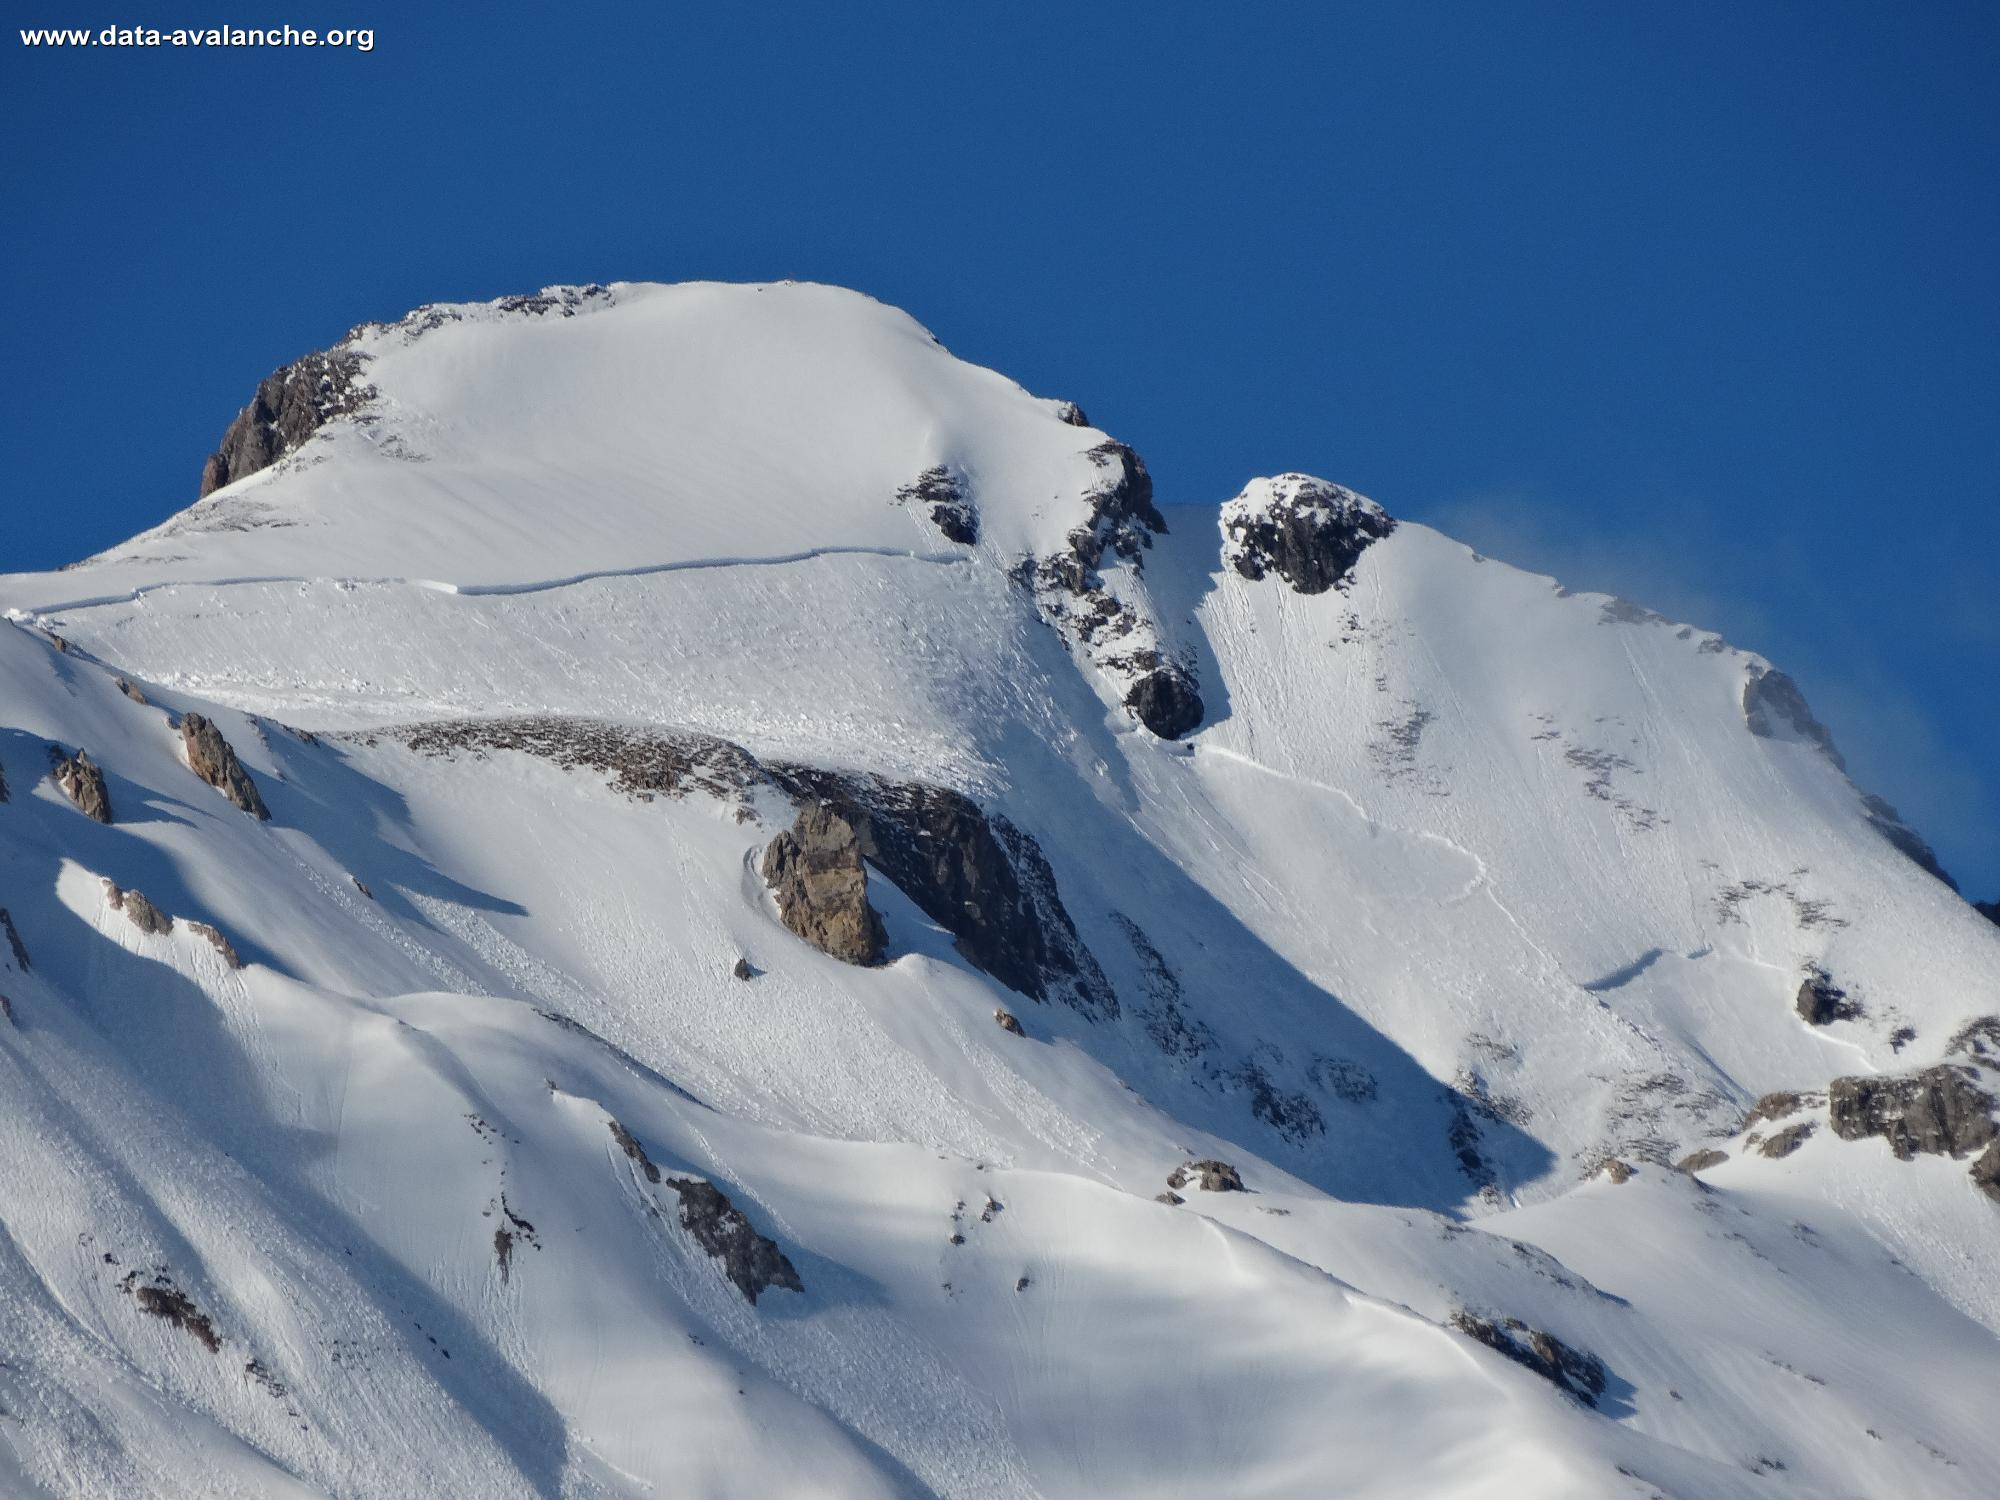 Avalanche Maurienne - Photo 1 - © Bertrand